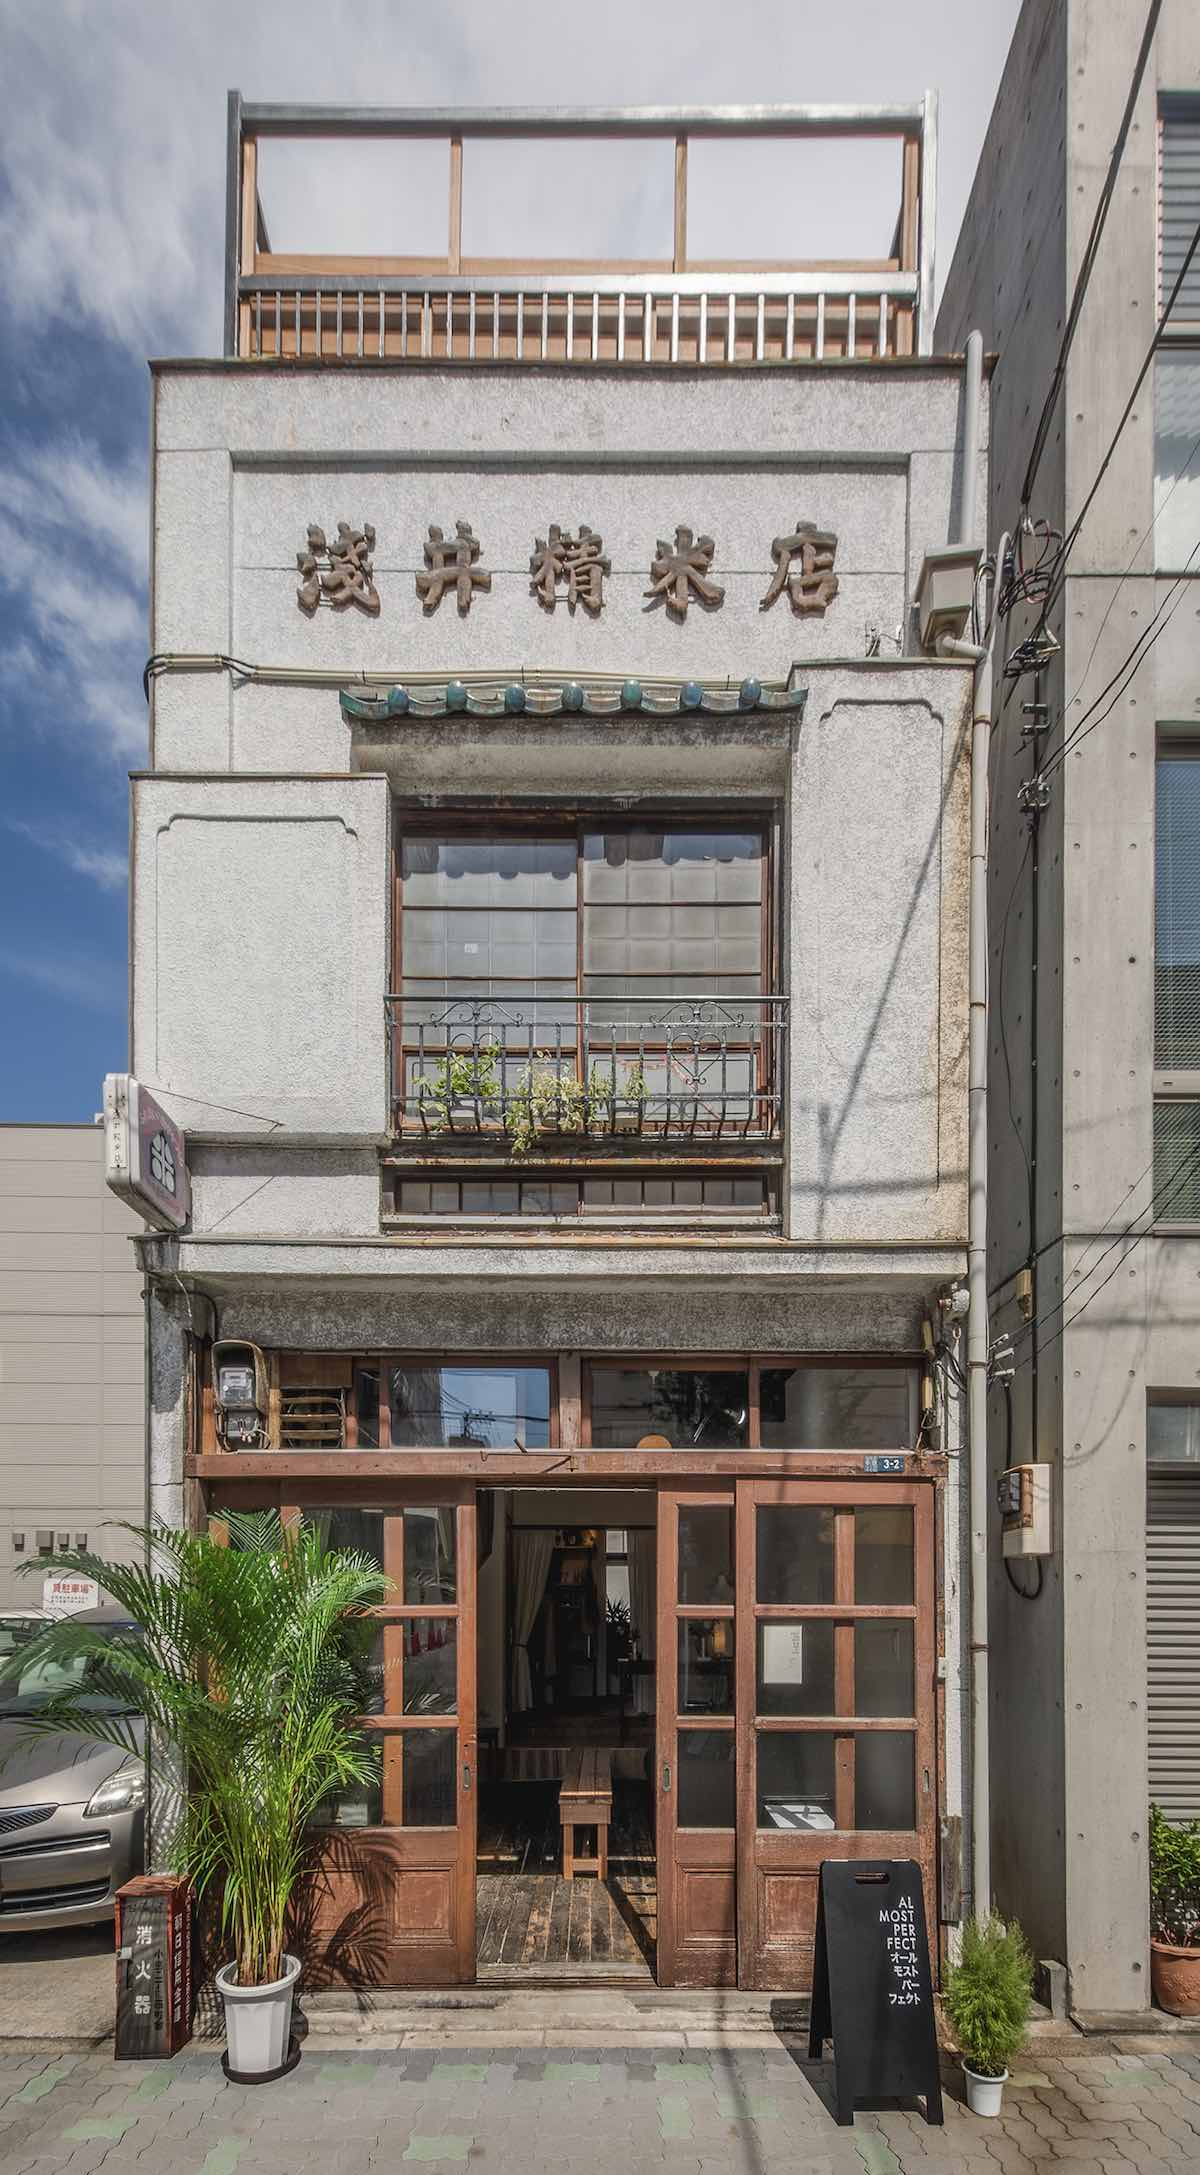 A Huge Small Place: an Urbanist's Guide to Tokyo